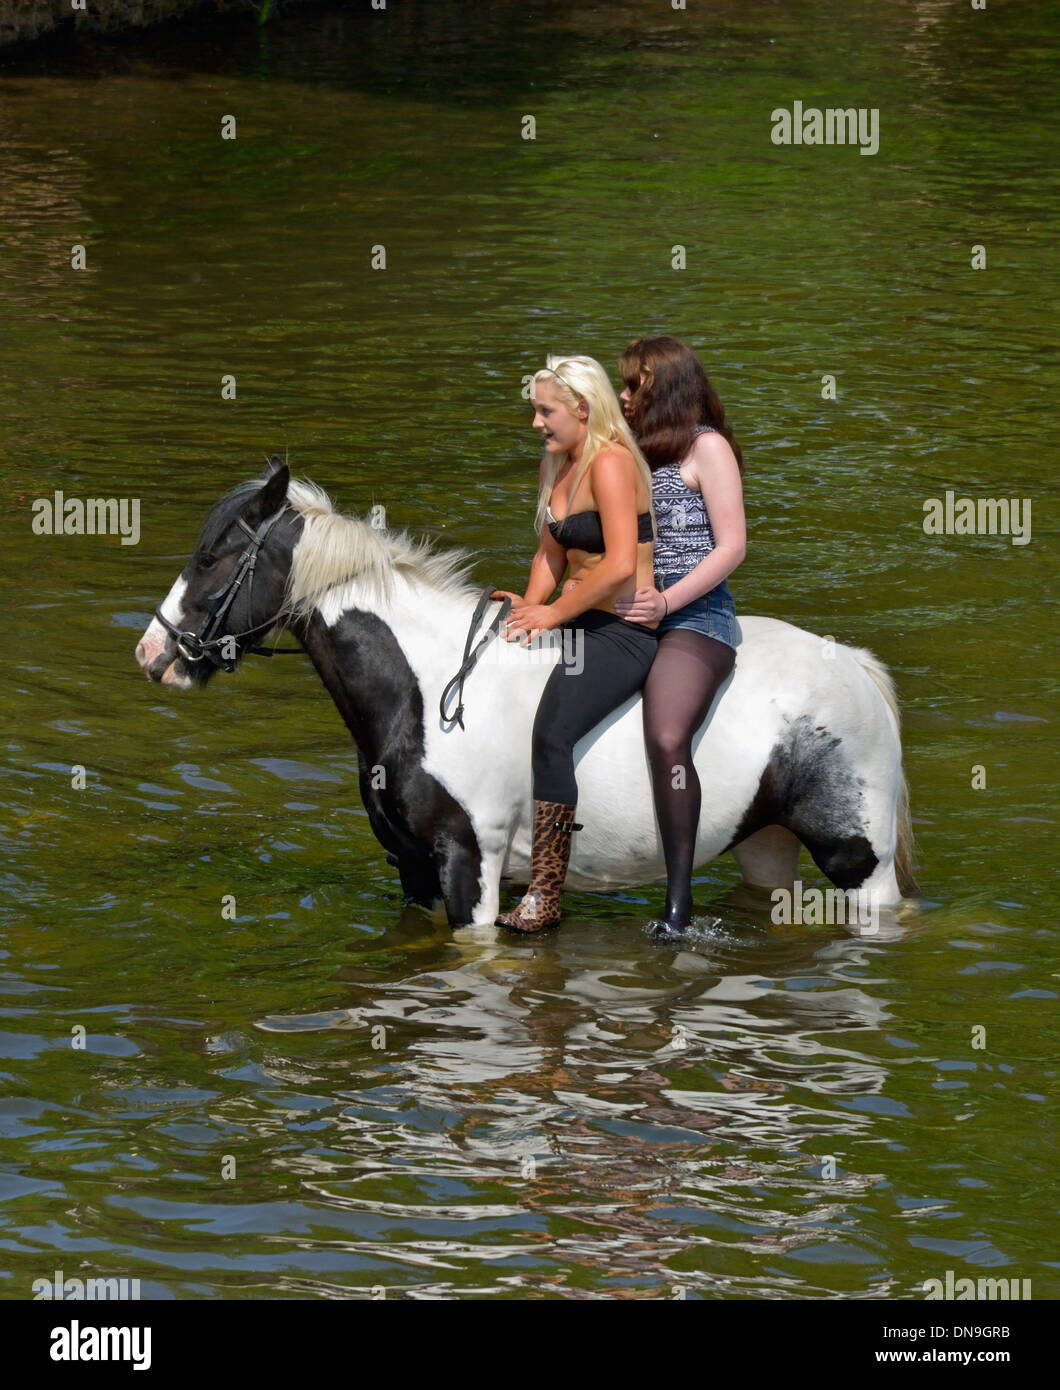 Gypsy traveller girls riding horse in River Eden. Appleby Horse Fair, June 2013. Appleby-in-Westmorland, Cumbria, England. - Stock Image